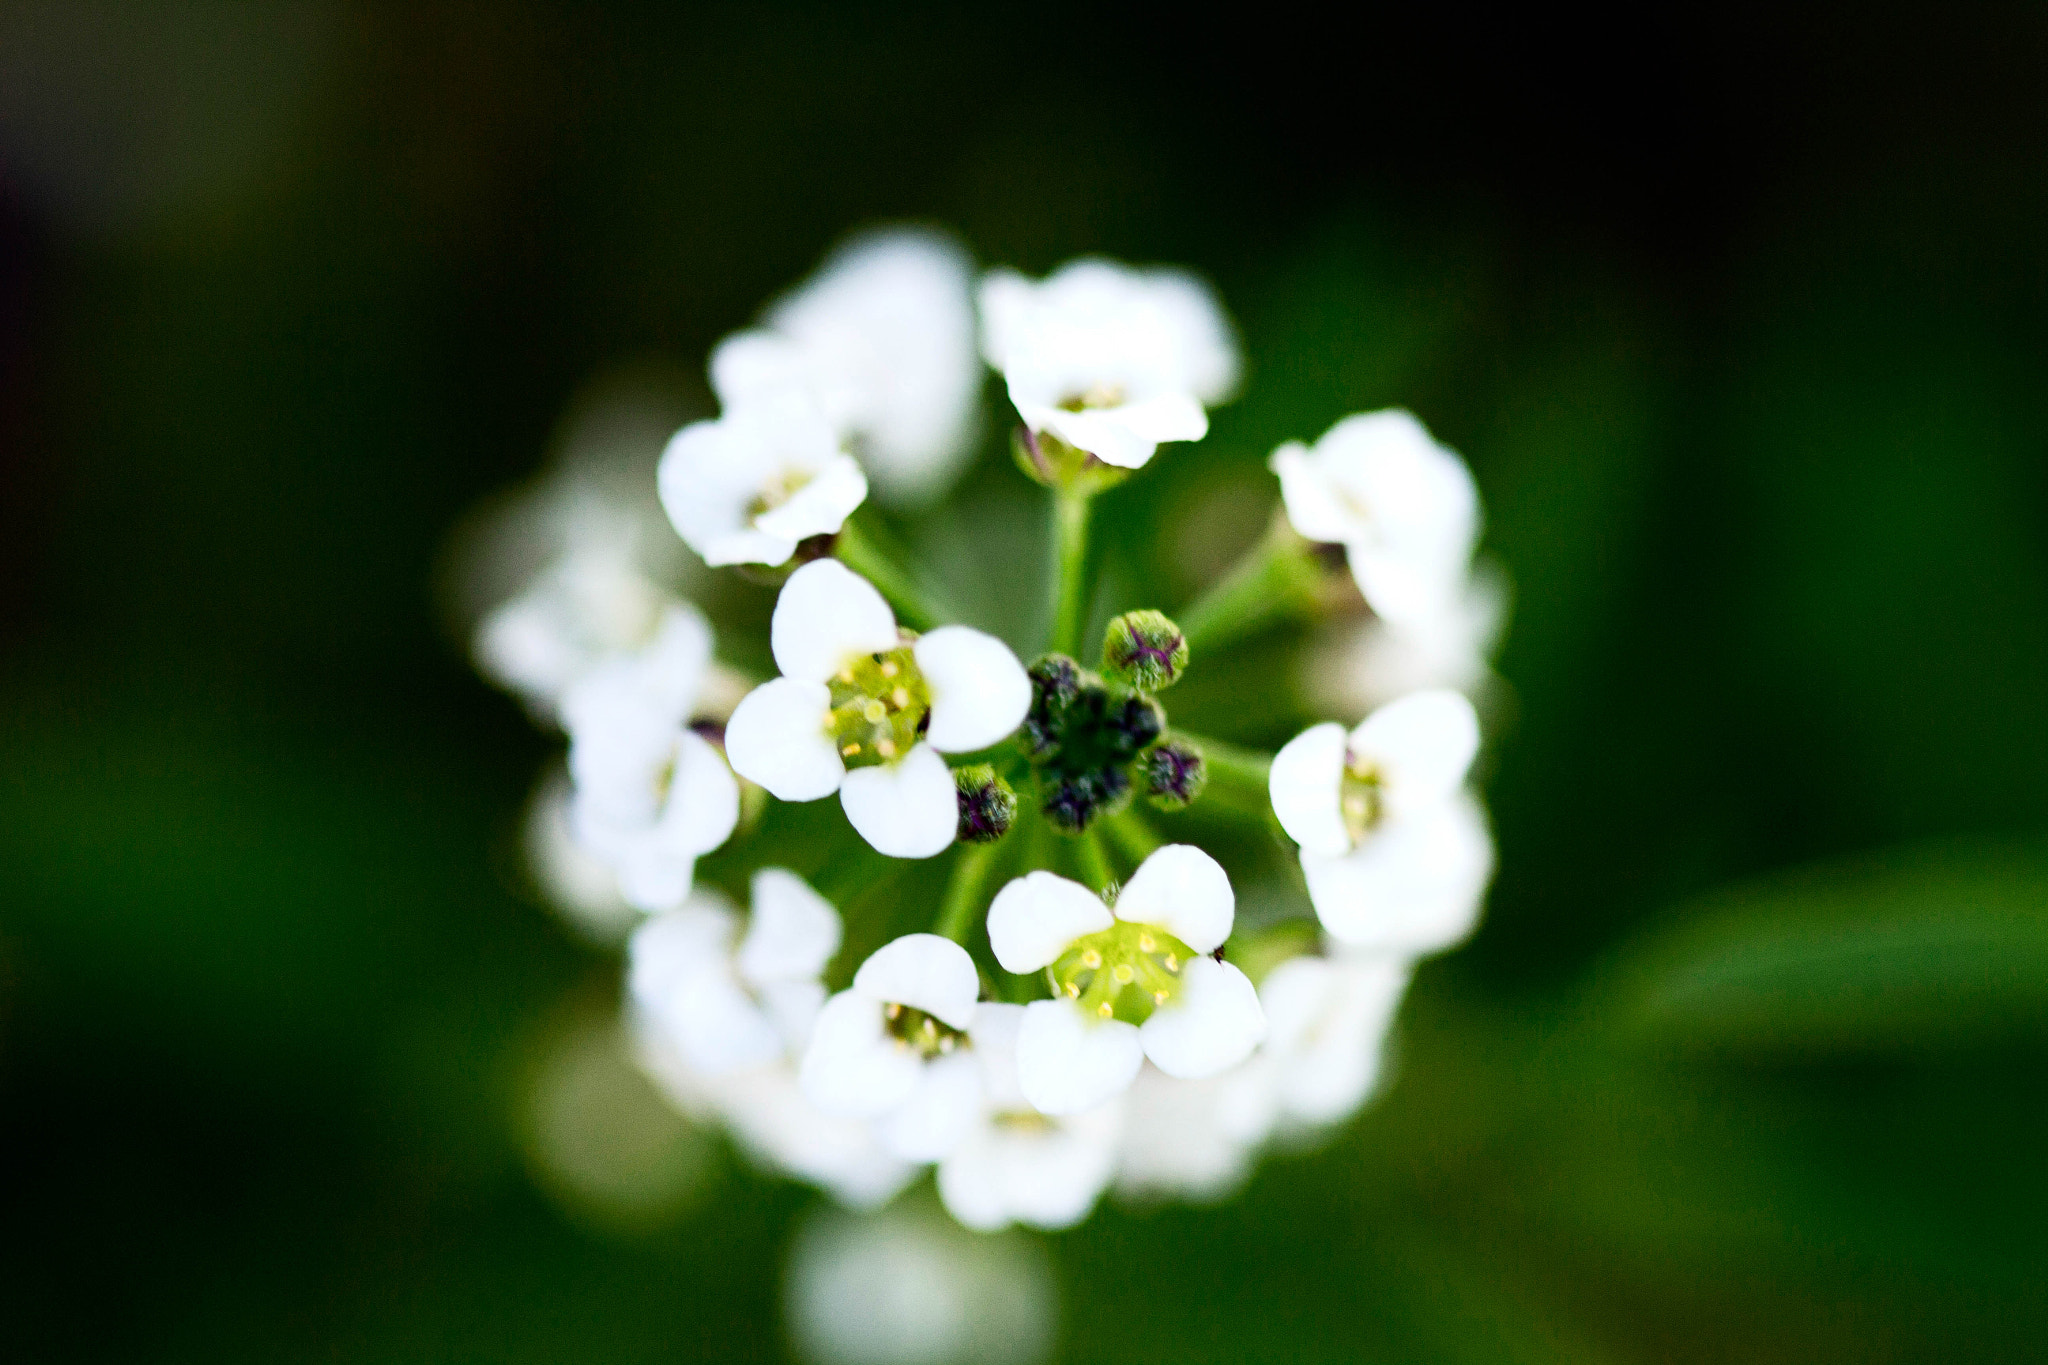 Photograph White Flower by Cameron Smith on 500px